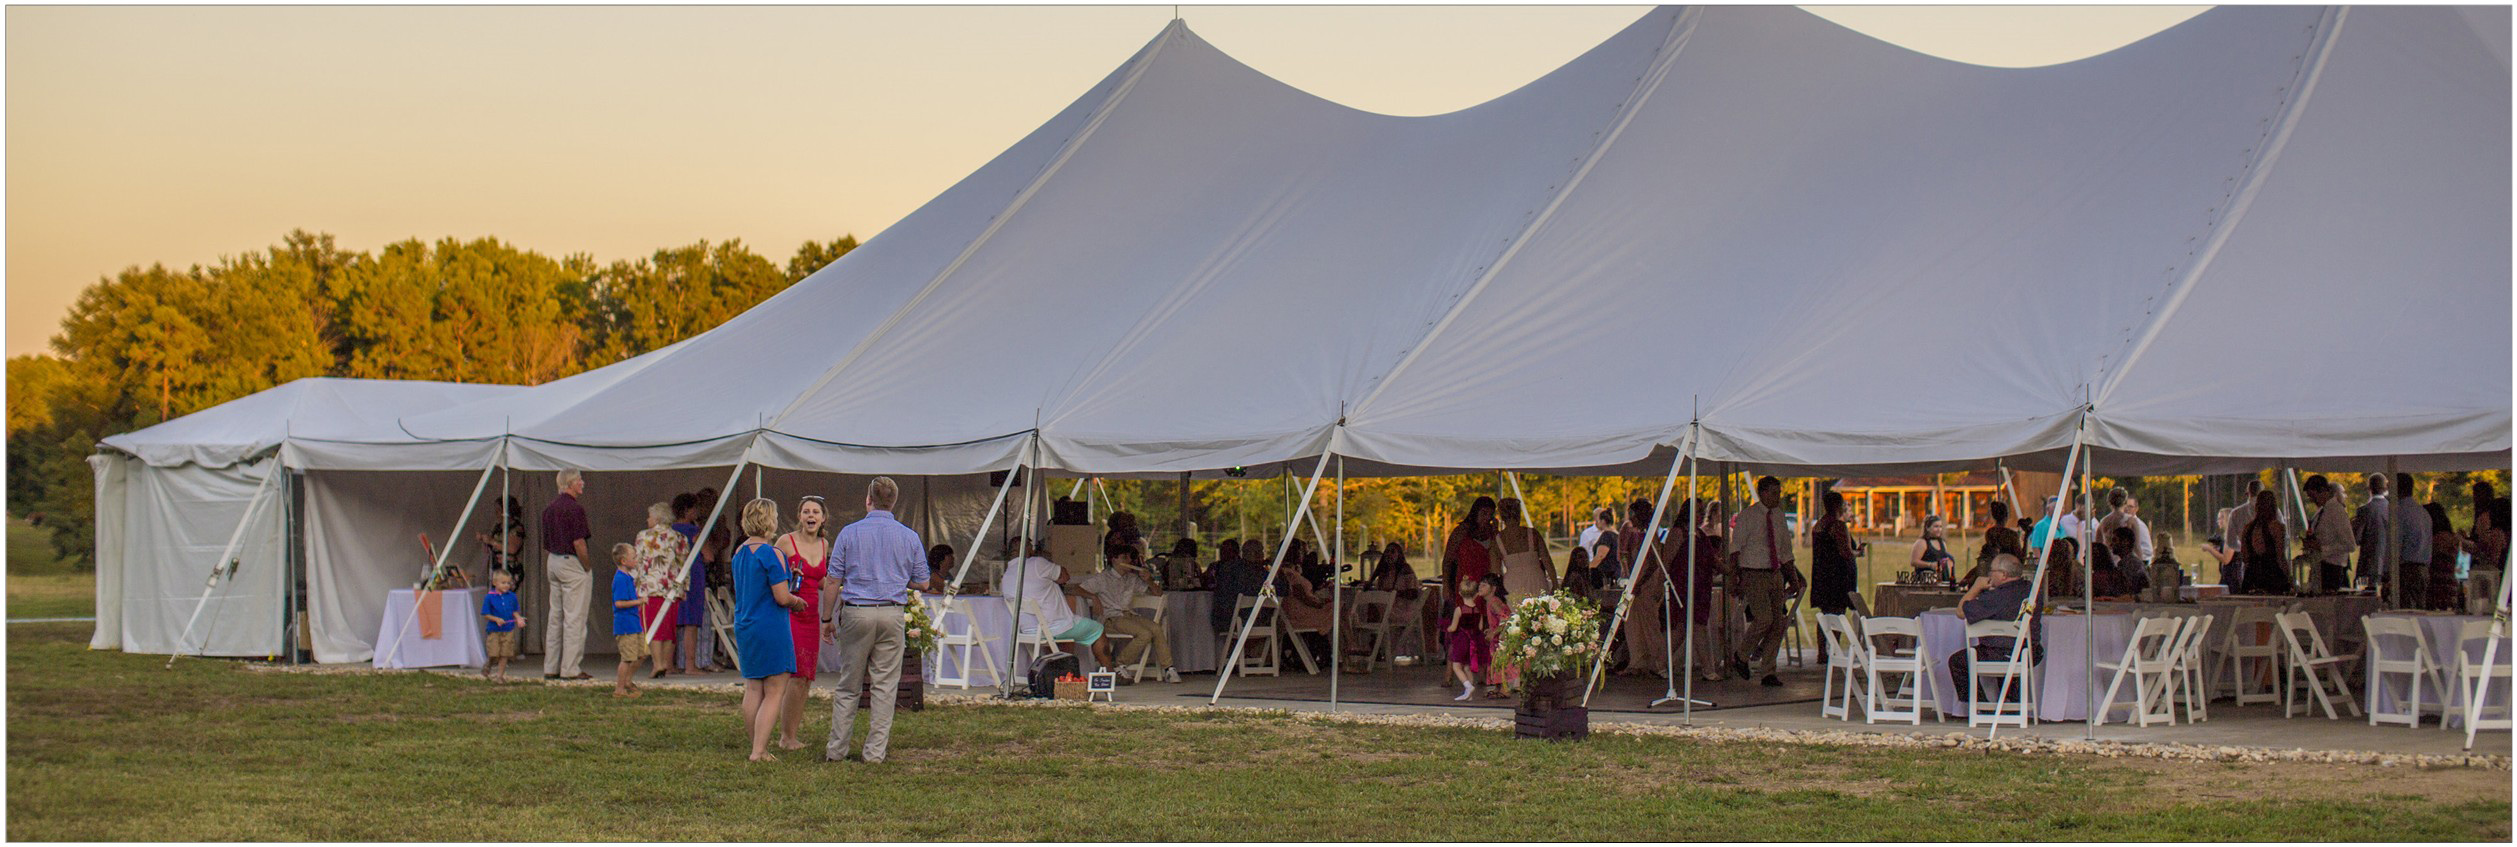 high peak wedding tents